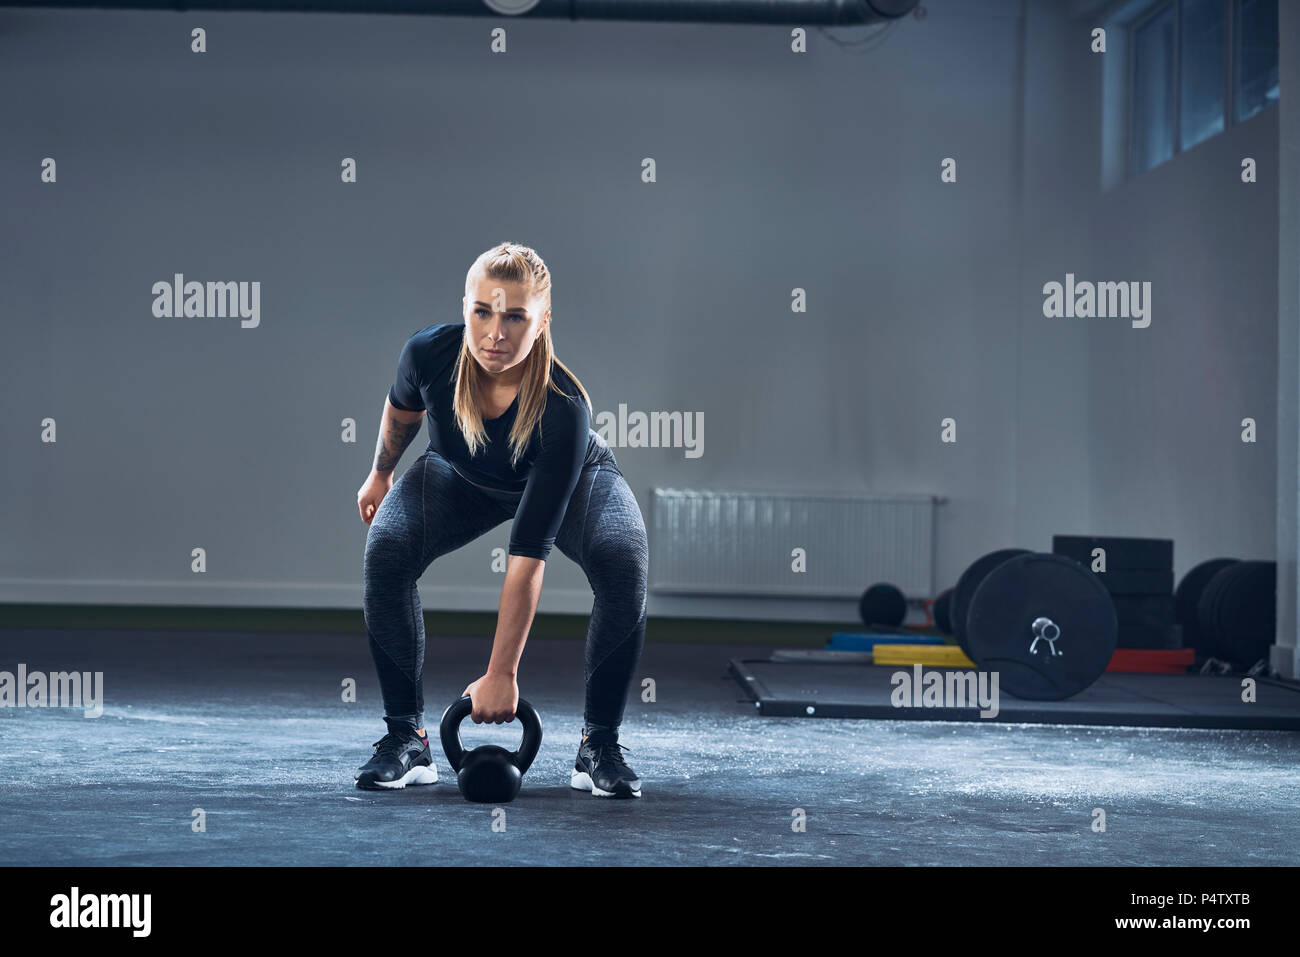 Woman exercising with kettlebell at gym - Stock Image